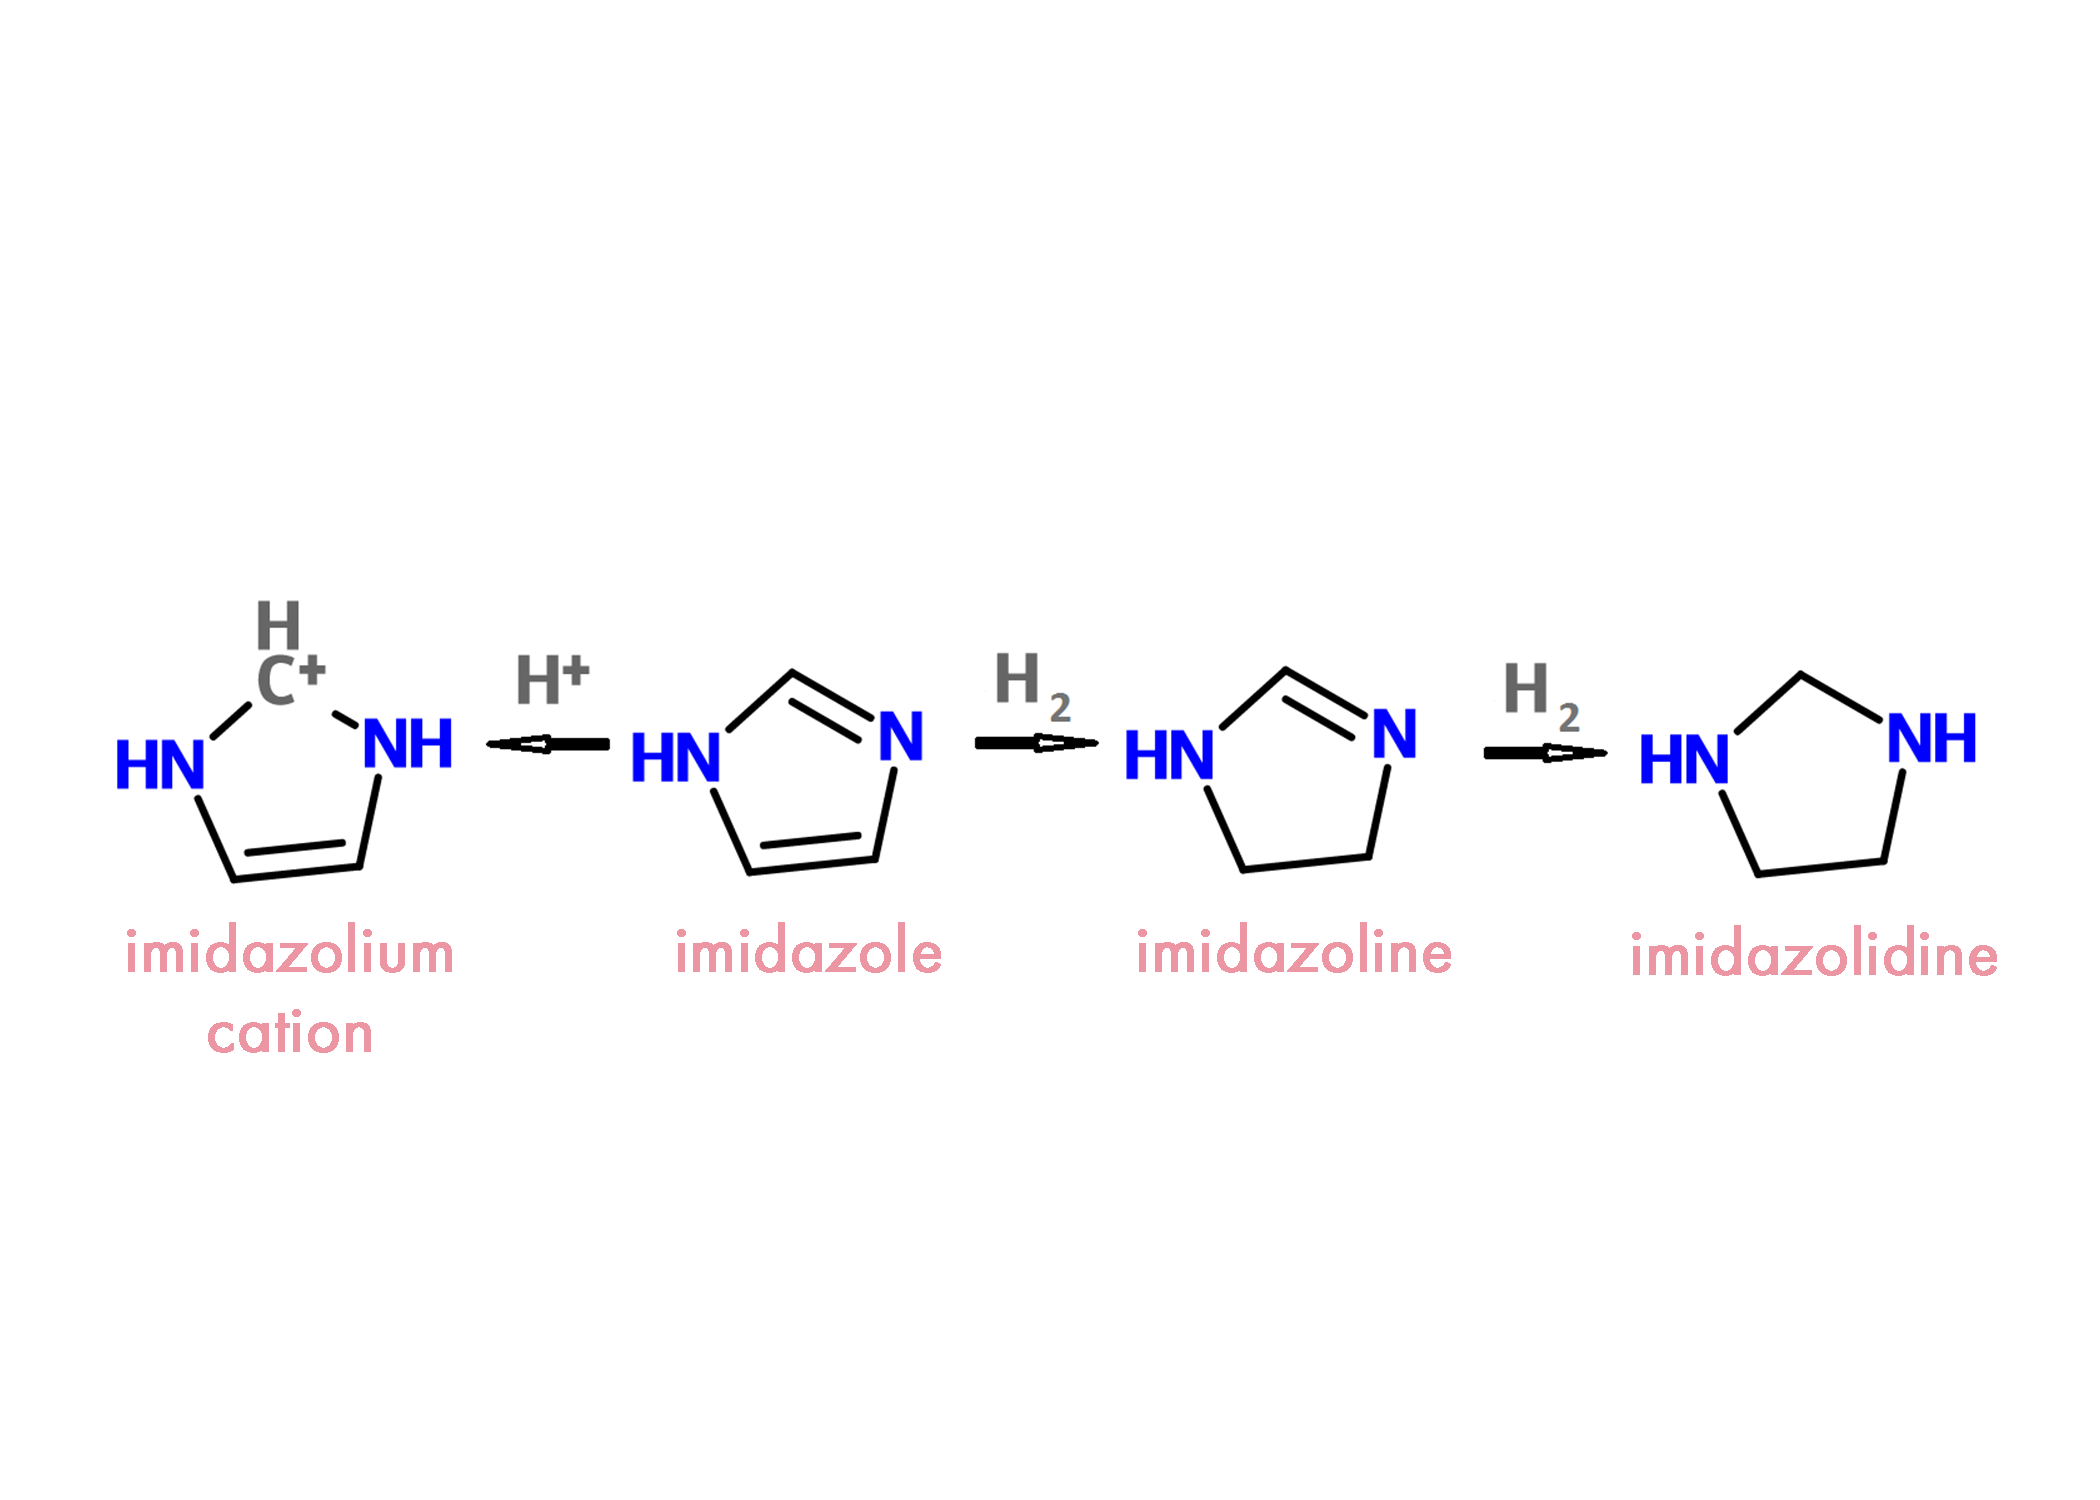 Figure 3. Formation of an imidazoline structure